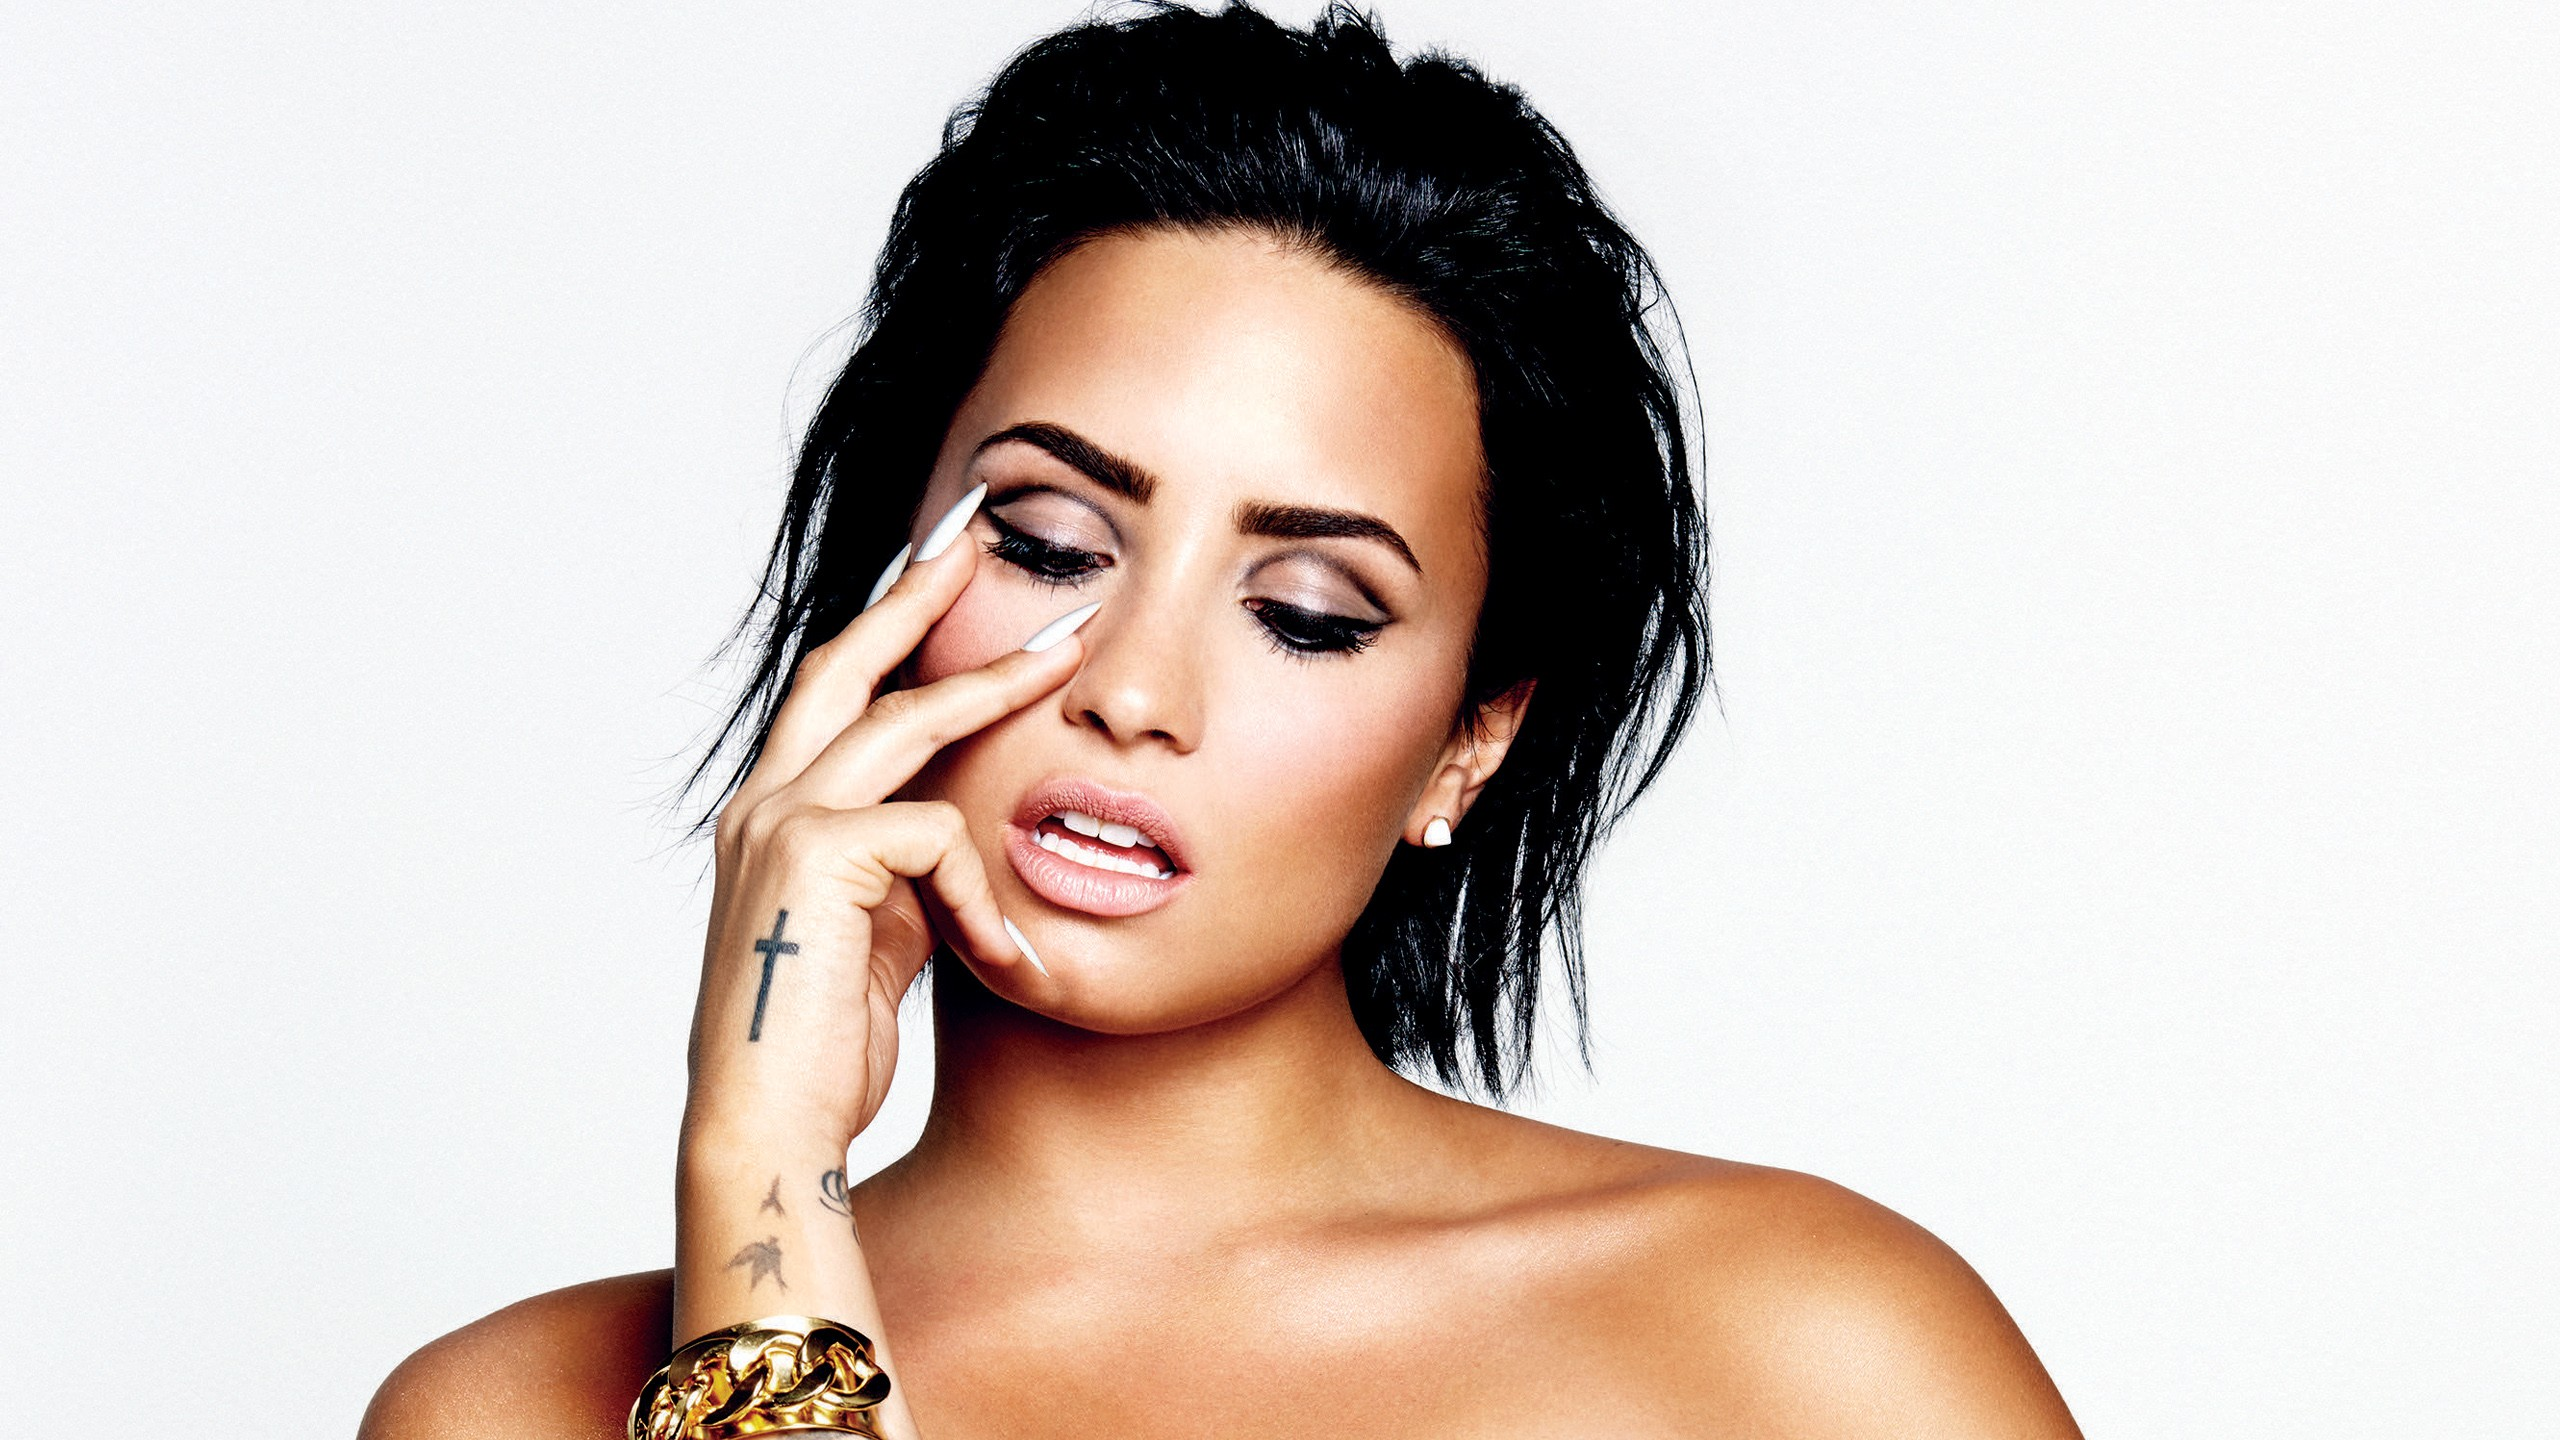 Fall Beach Widescreen Wallpaper Demi Lovato 44 Wallpapers Hd Wallpapers Id 16218